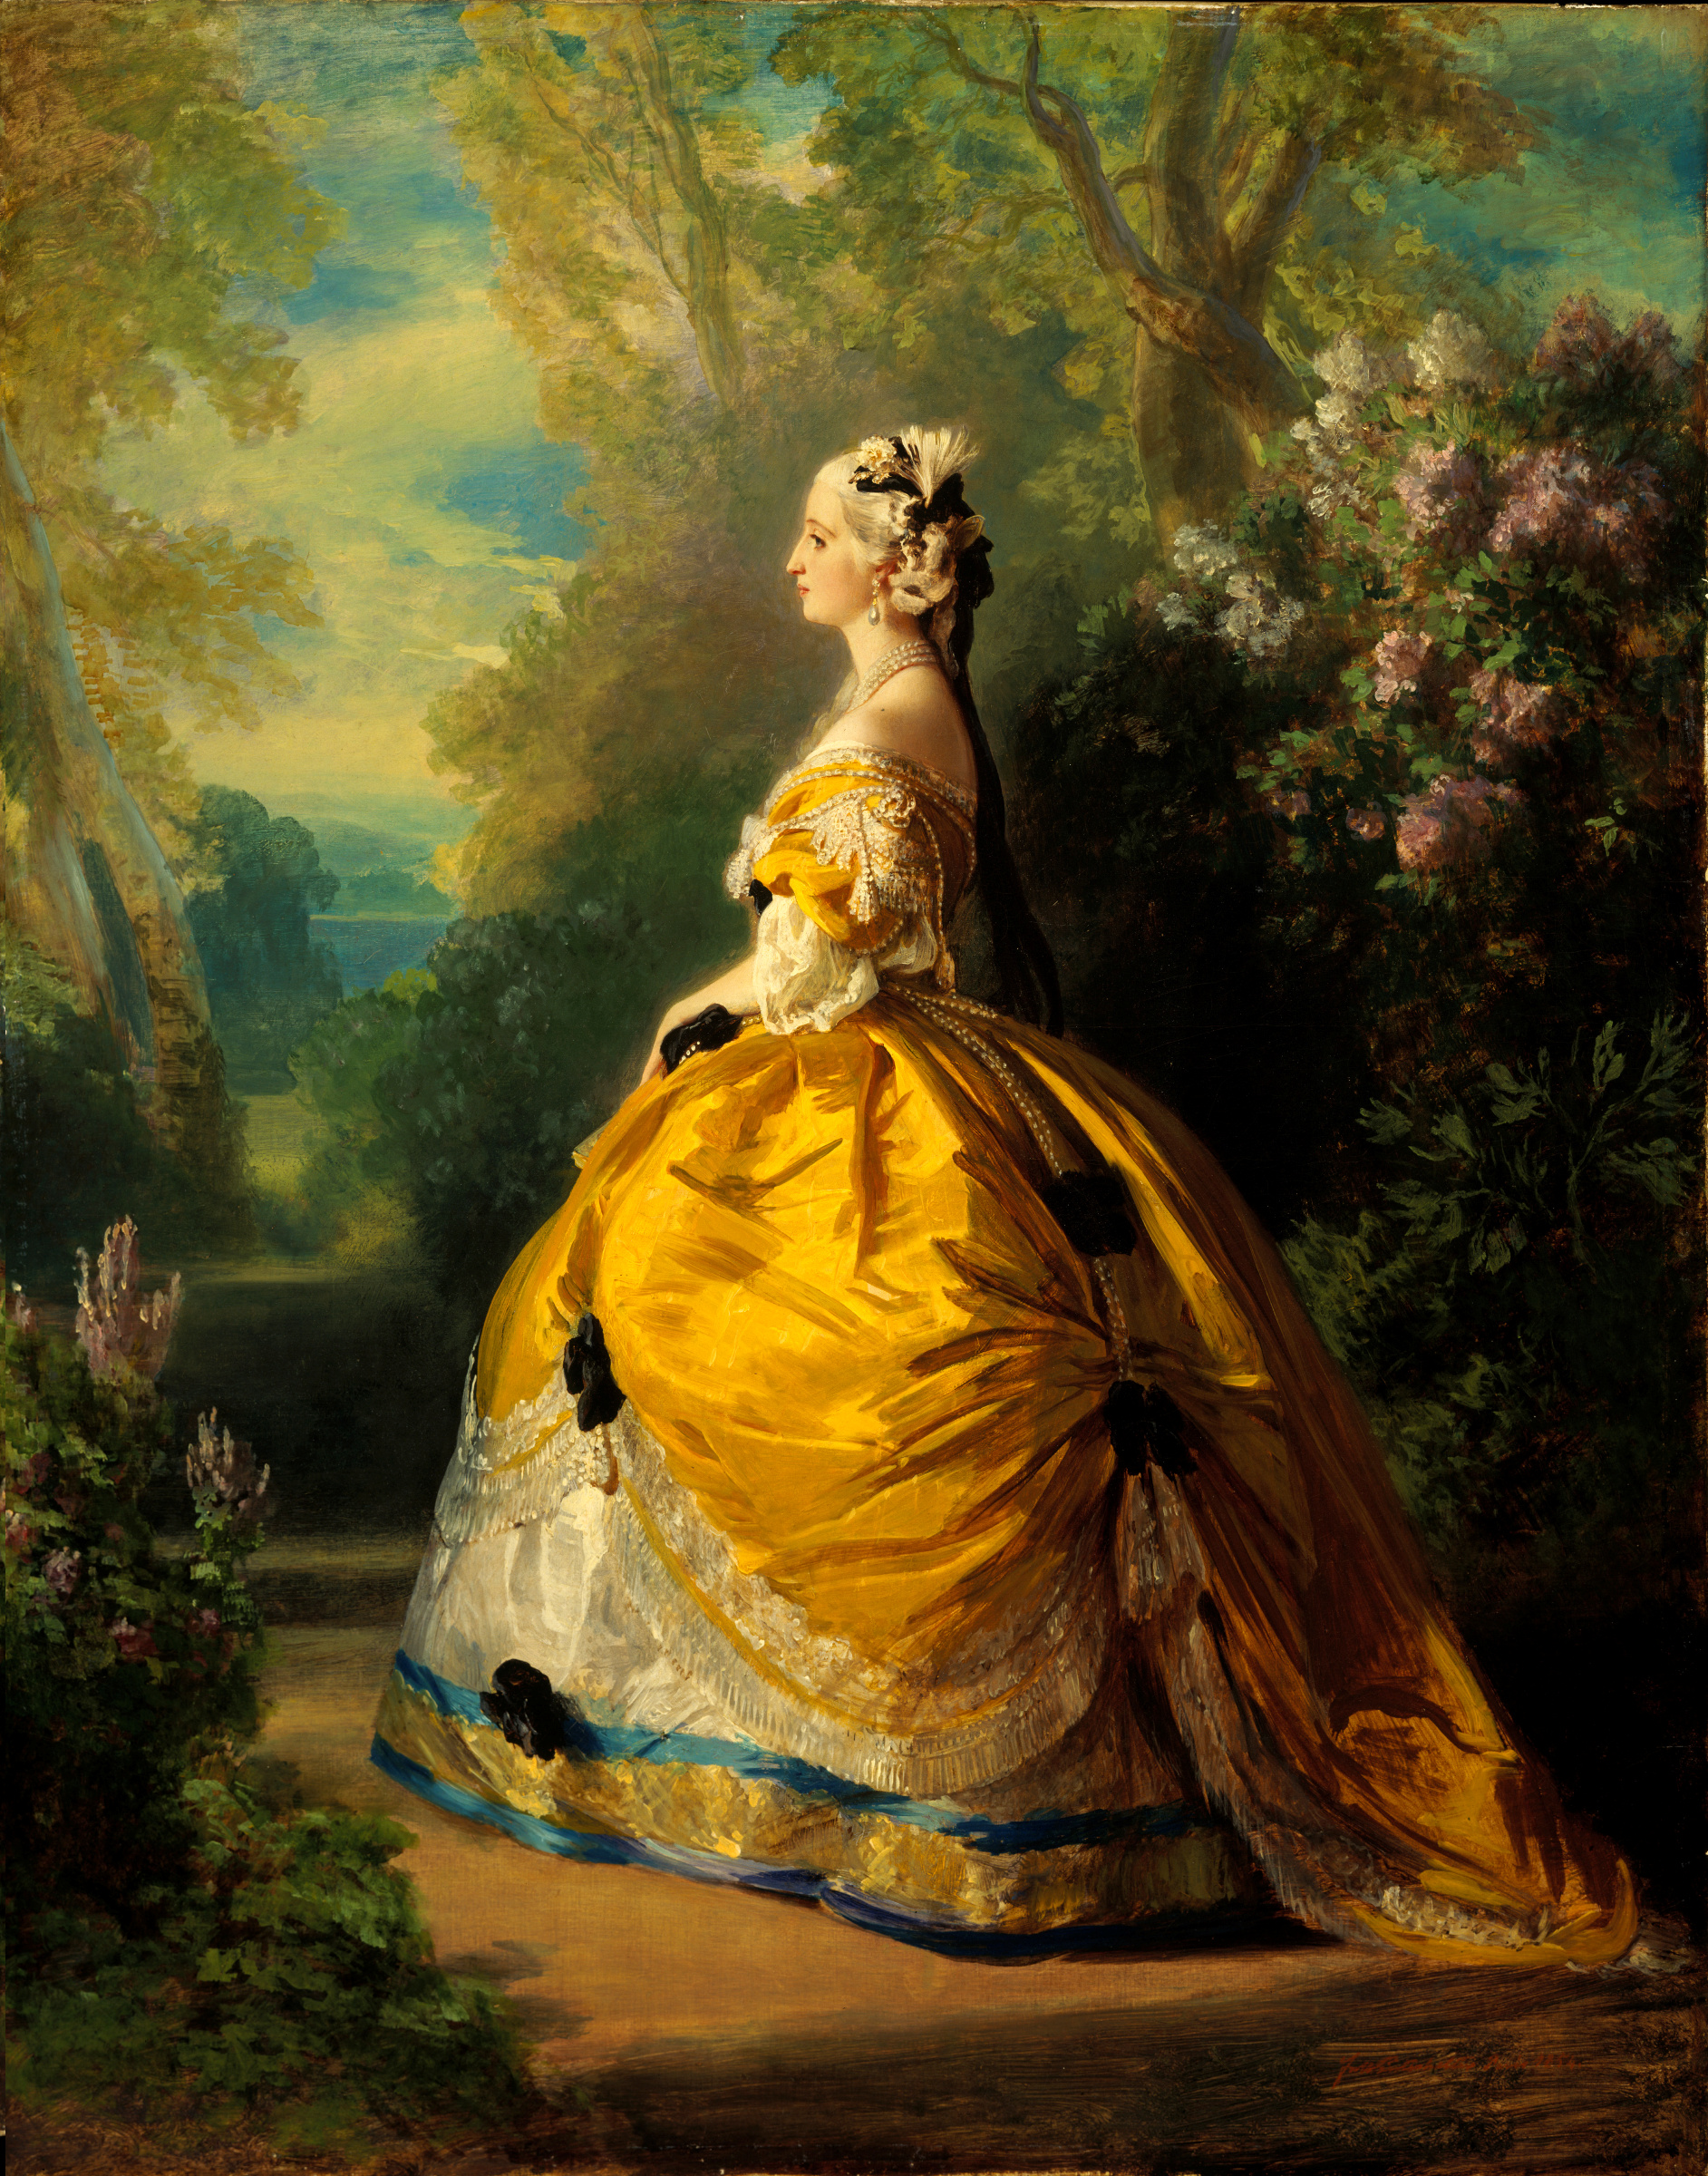 Franz X. Winterhalter, Empress Eugénie (Eugénie de Montijo, Condesa de Teba) in 18th-Century Costume, 1854, oil on canvas, The Metropolitan Museum of Art, New York.